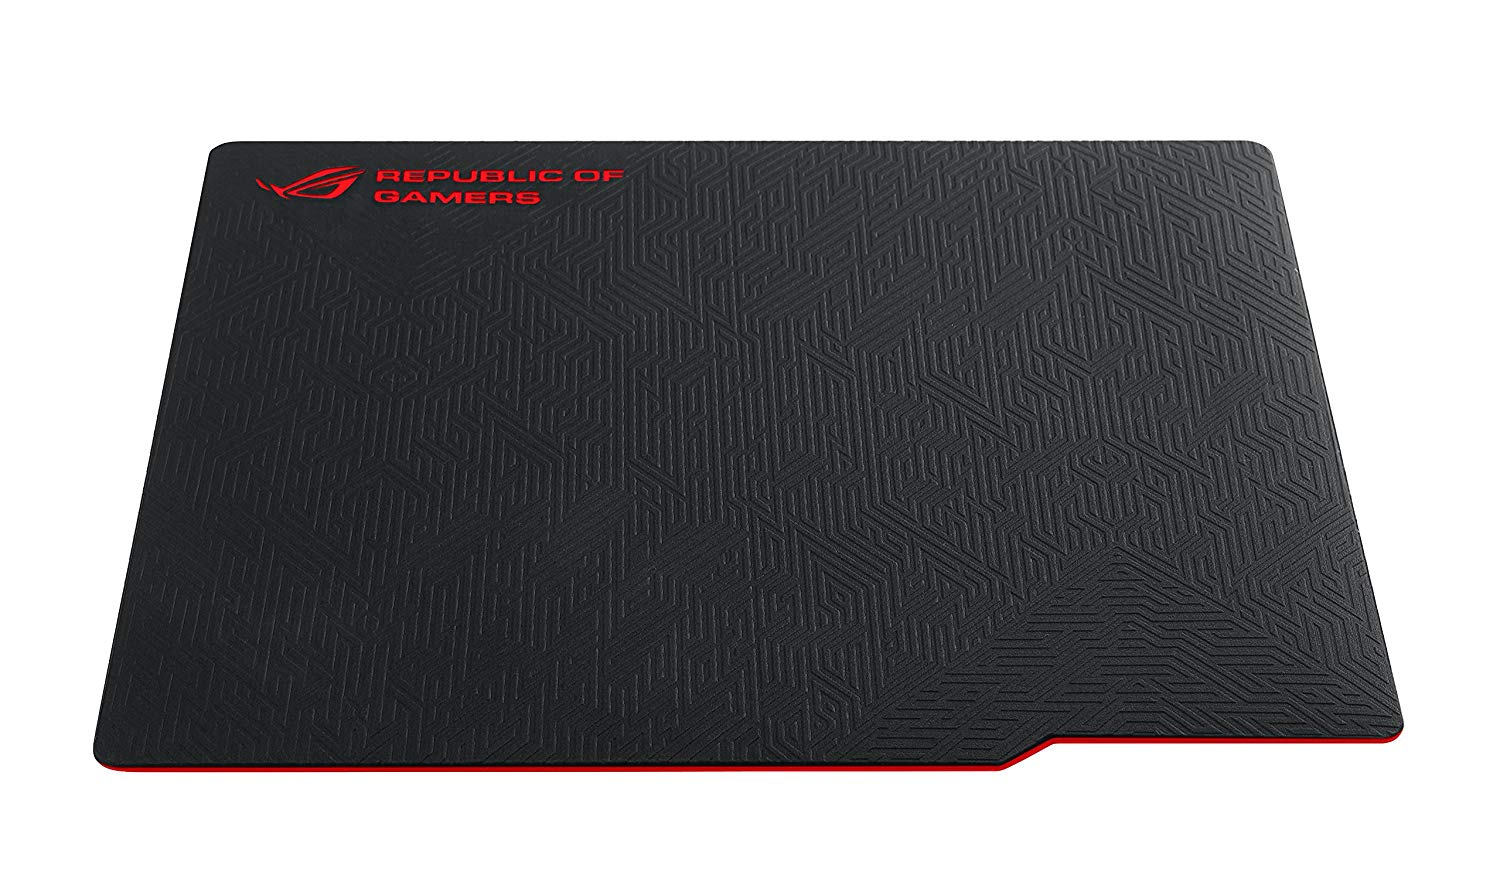 ASUS ROG Whetstone washable soft gaming mouse pad for £24.95